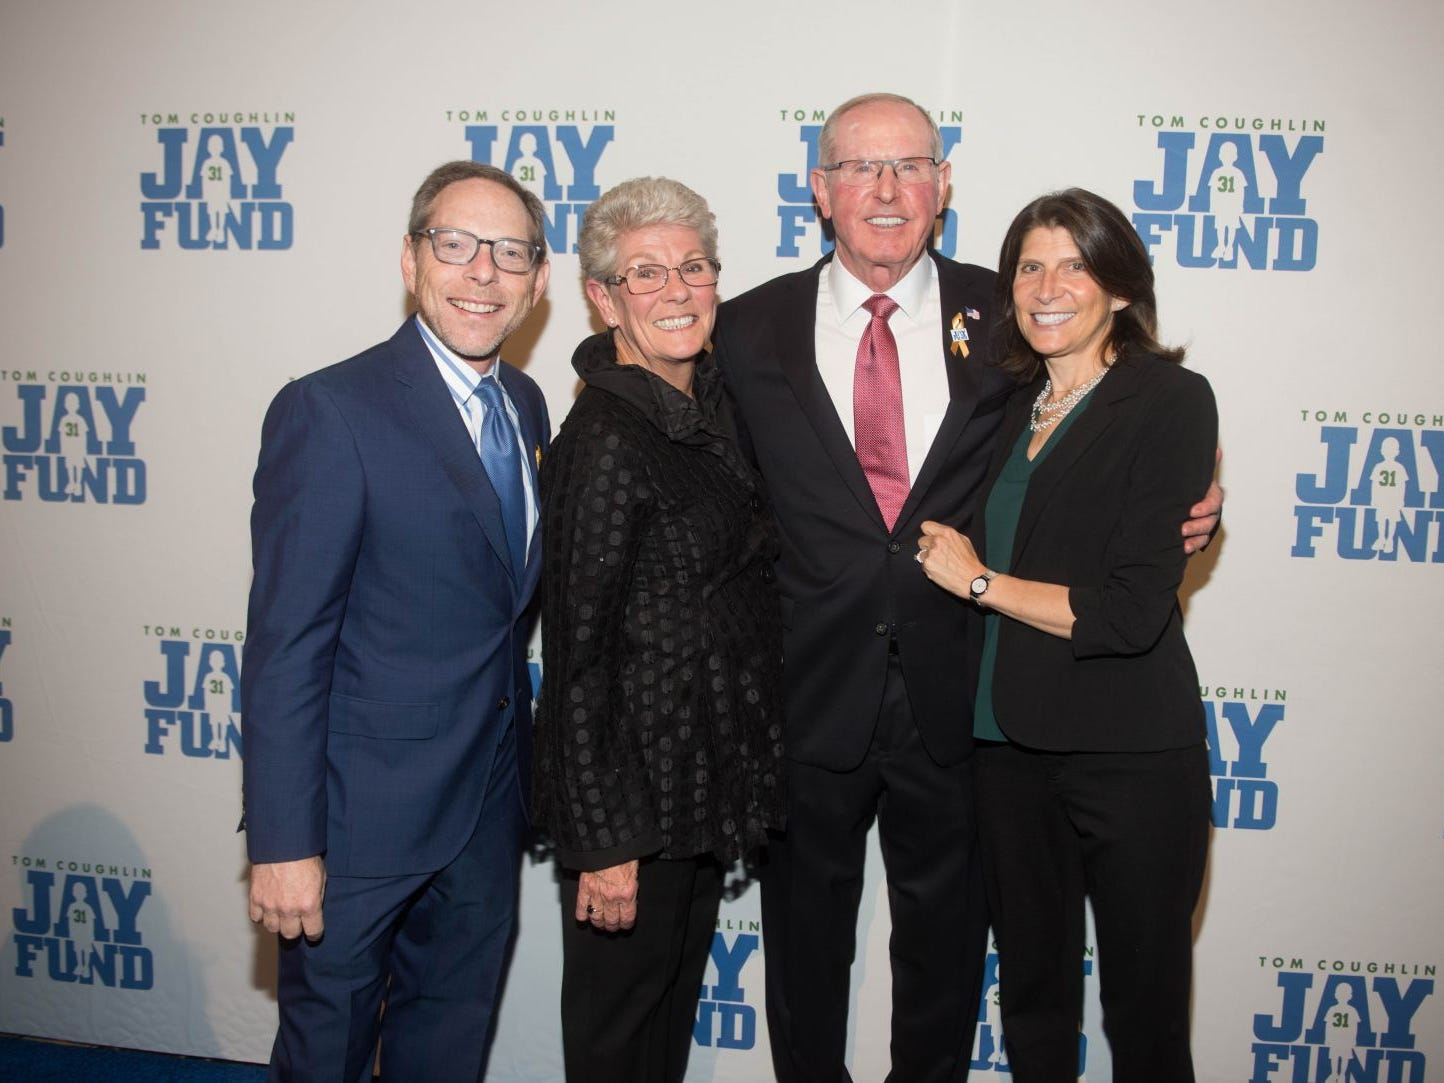 Sandy Montag, Judy Coughlin, Tom Coughlin and Nancy Montag. The 14th annual Jay Fund Champions for Children Gala was held at Cipriani 42nd Street. 09/21/2018